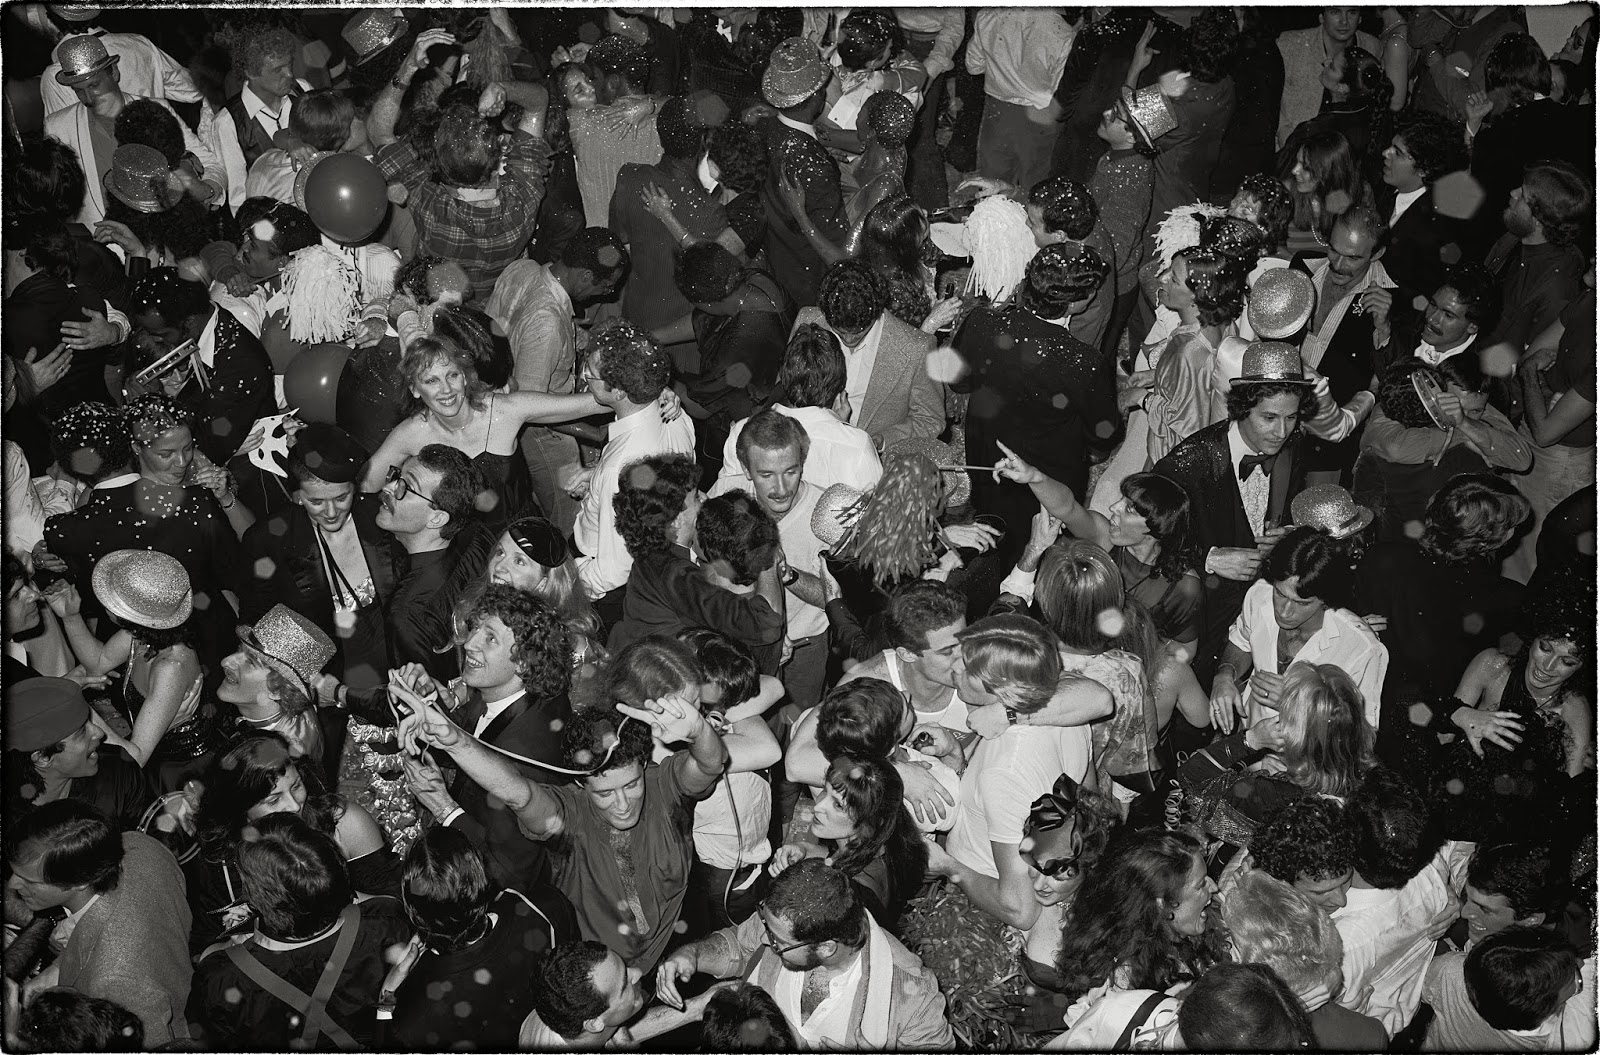 Elizabeth Avedon Journal Tod Papageorge Studio 54 1978 1980